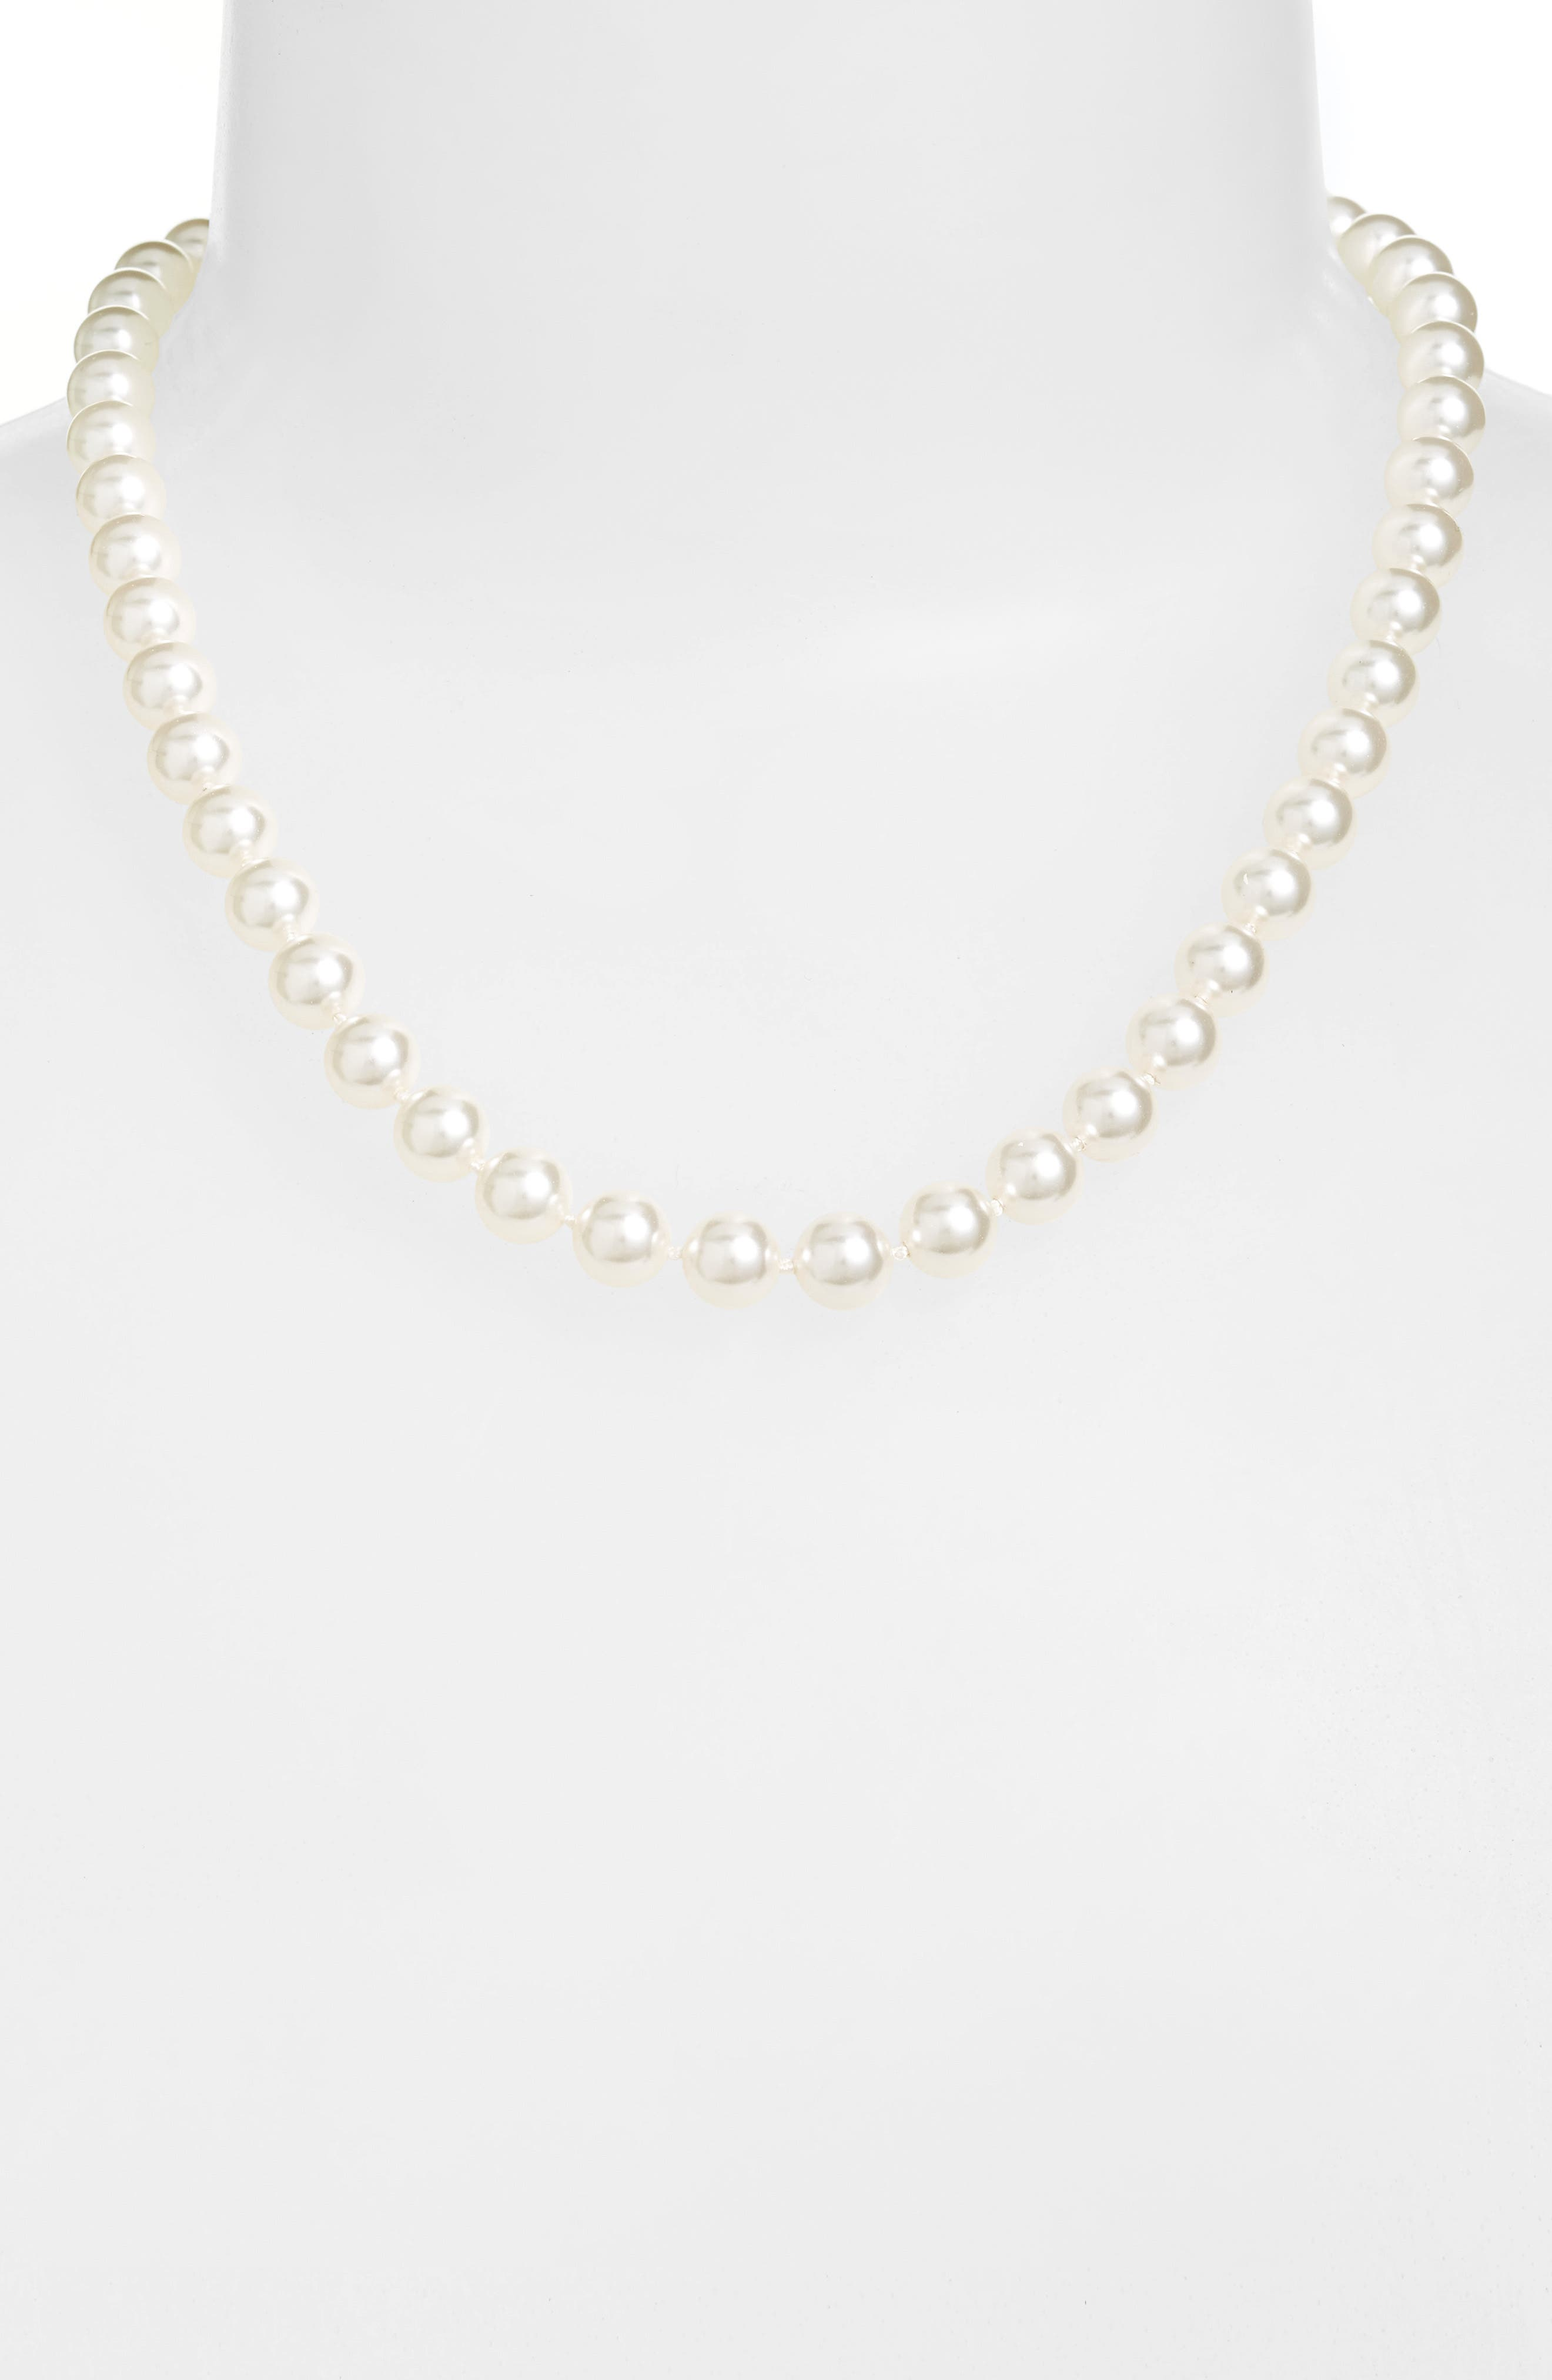 18-Inch Glass Pearl Strand Necklace,                         Main,                         color, White Pearl